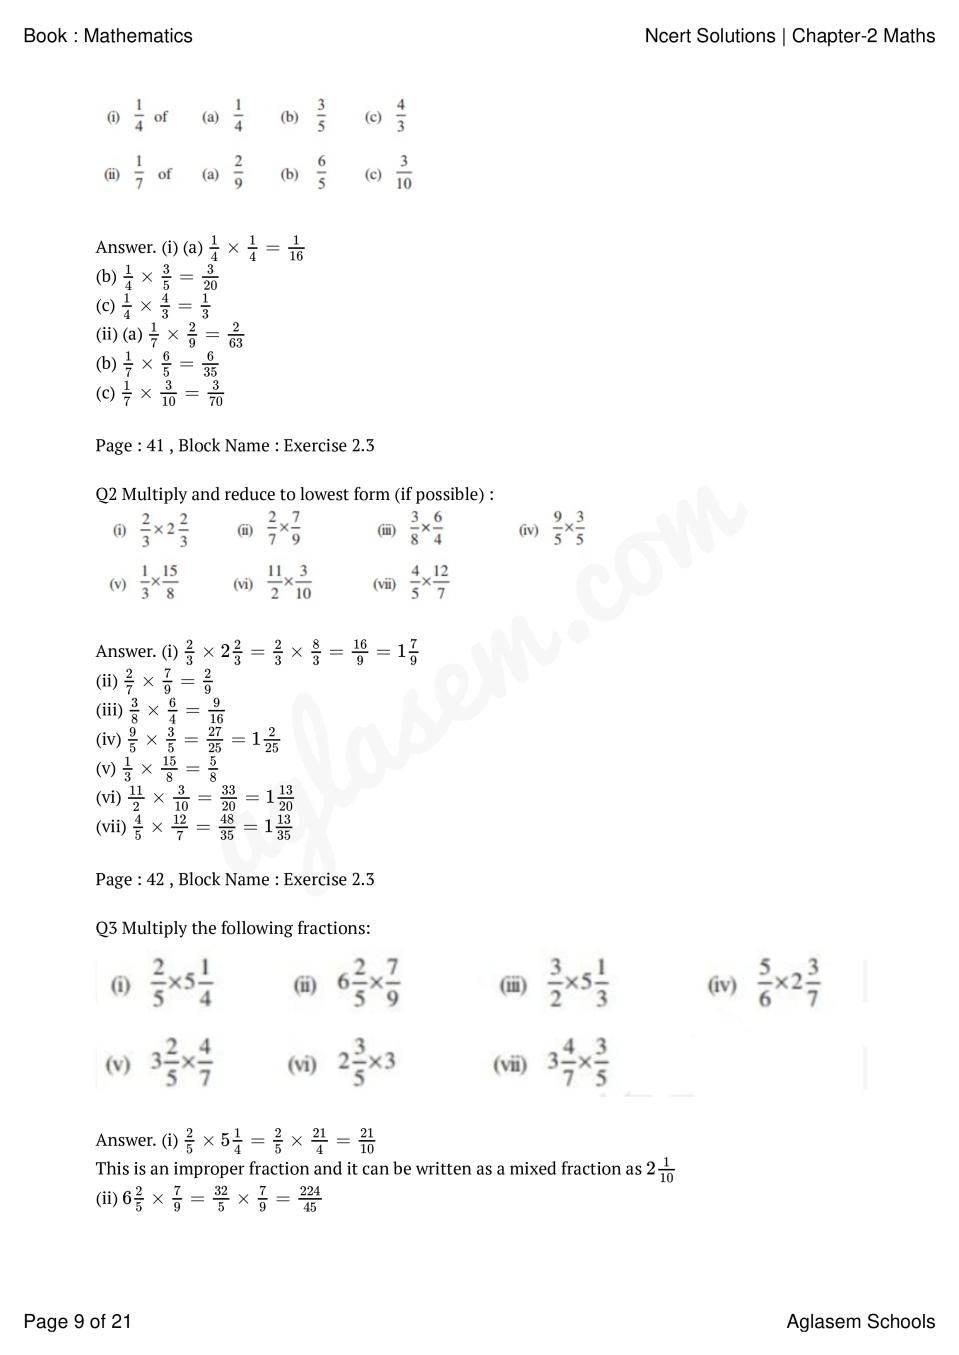 Ncert Solutions For Class 7 Maths Chapter 2 Fractions And Decimals Aglasem Schools